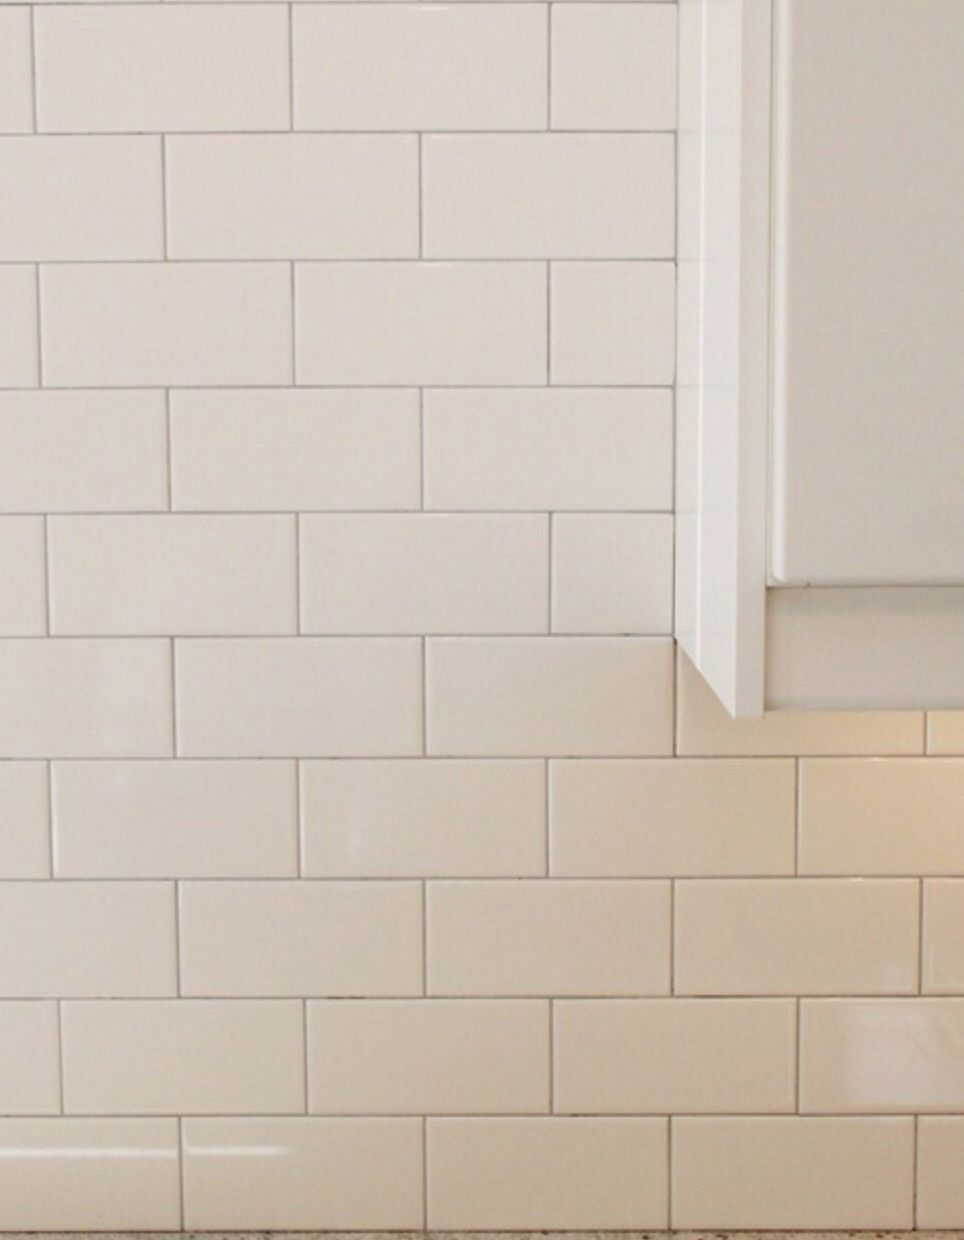 White subway tile with tight light gray grout lines small bath white subway tile with tight light gray grout lines dailygadgetfo Images